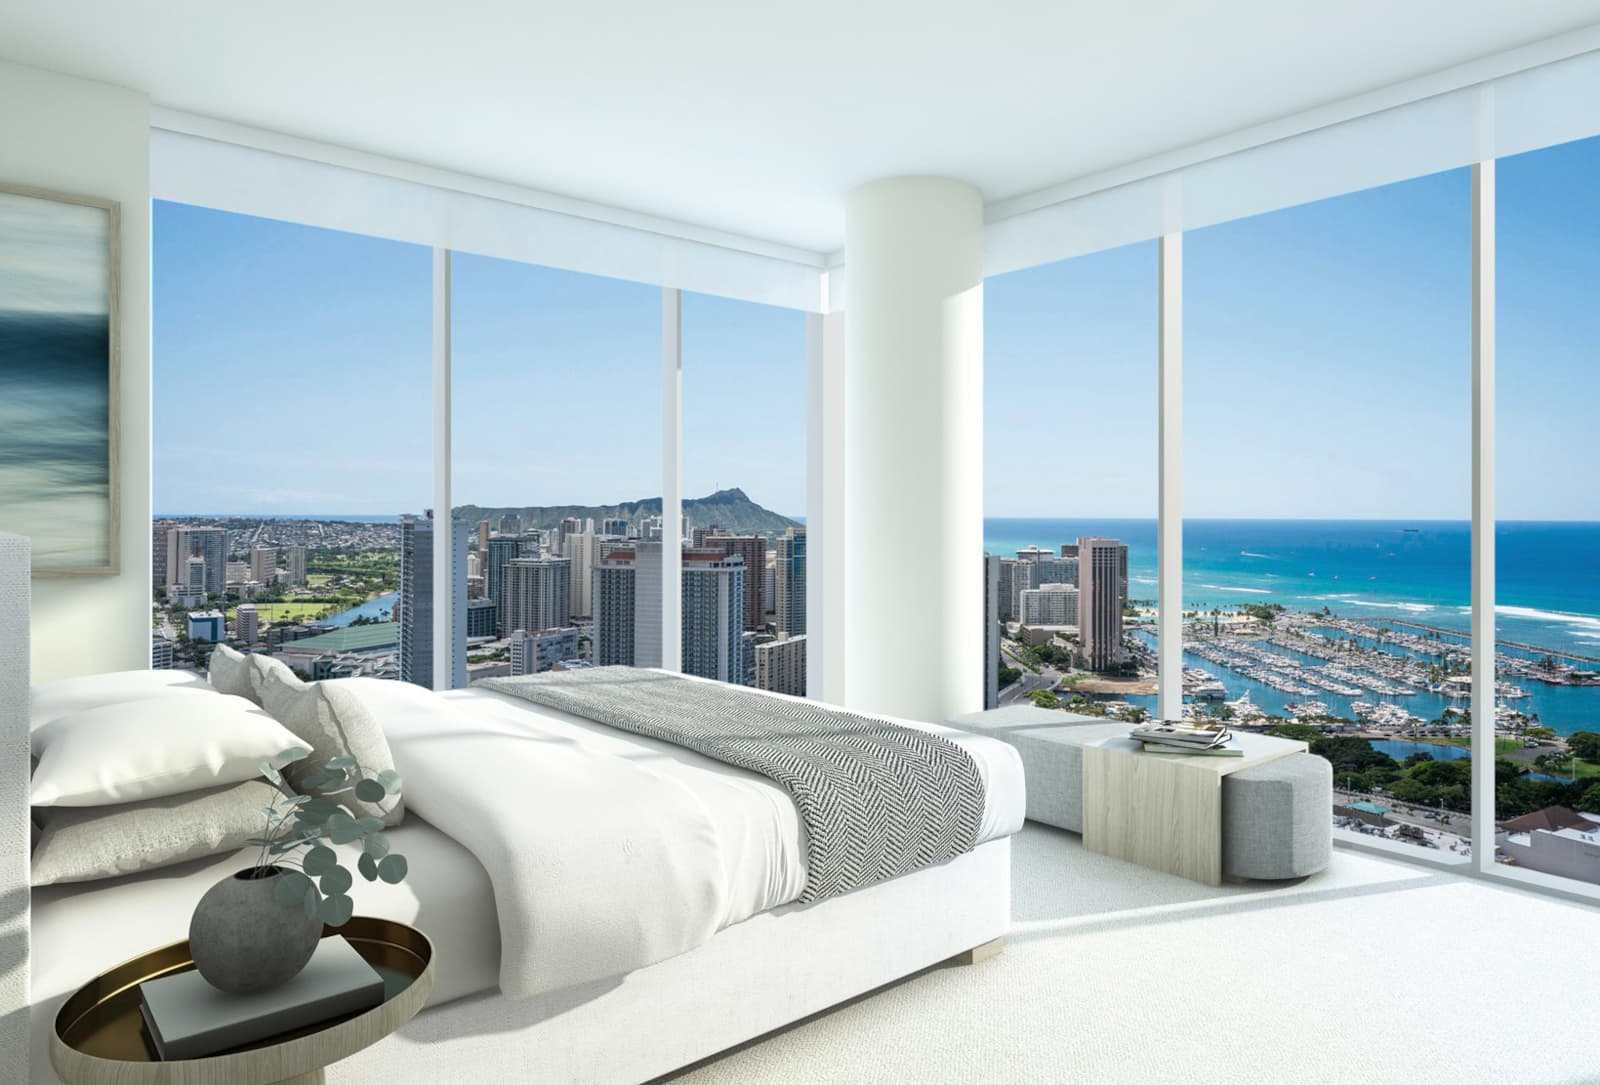 Sky Ala Moana Corner Bedroom With Floor To Ceiling Panoramic View